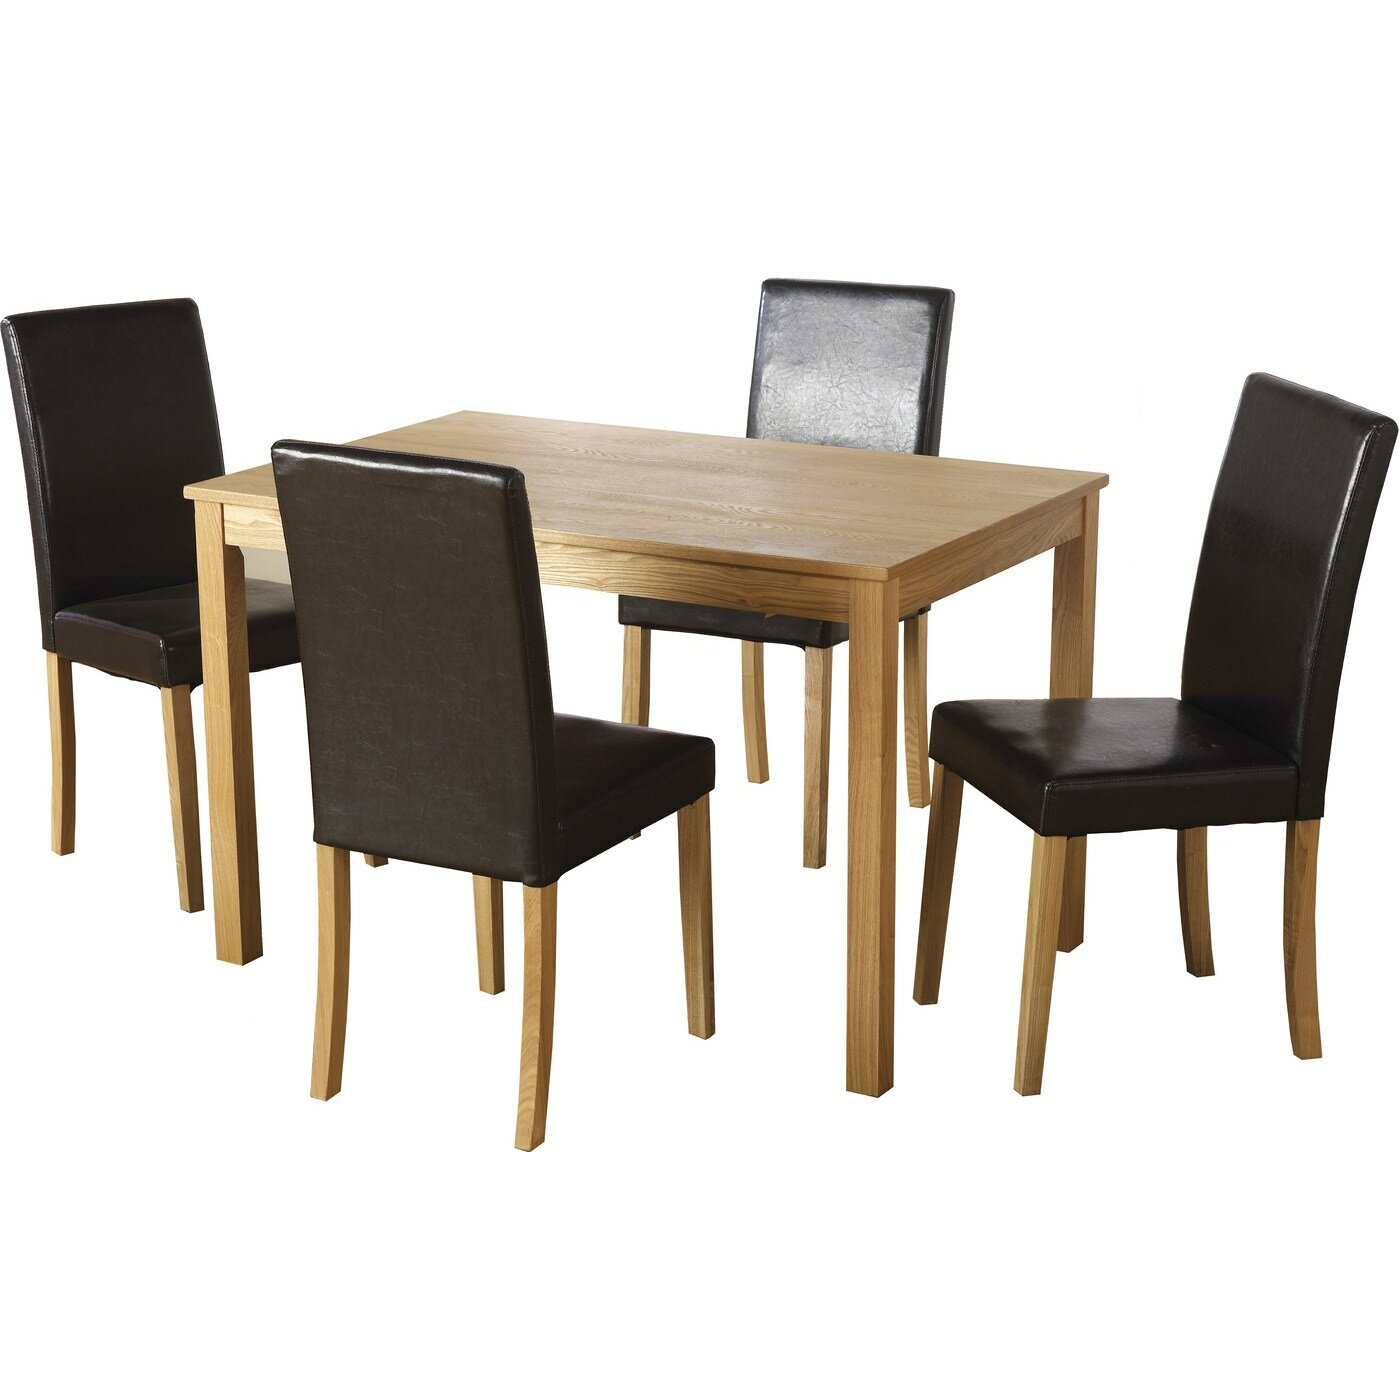 Anns Dining Table And 4 Chairs Wayfair Uk